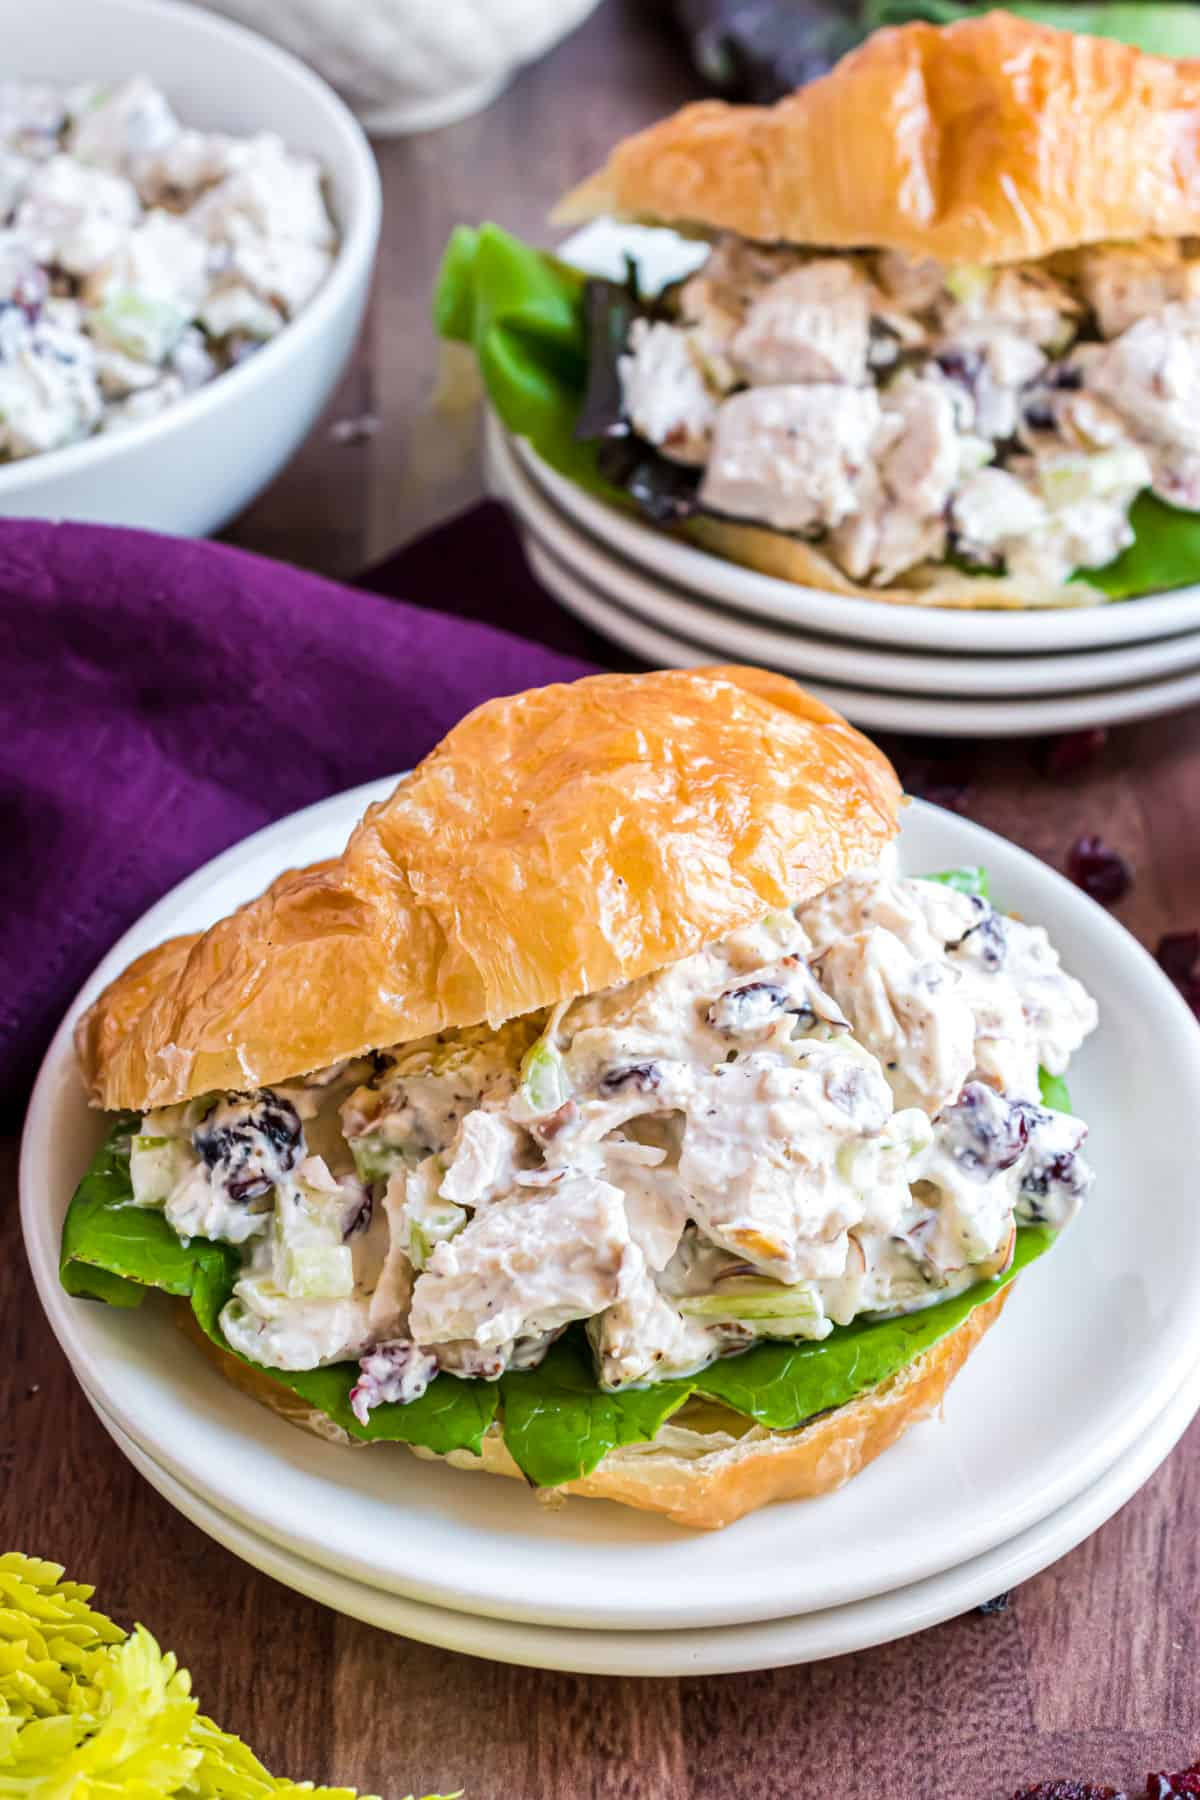 Chicken salad on a croissant with a bed of lettuce.